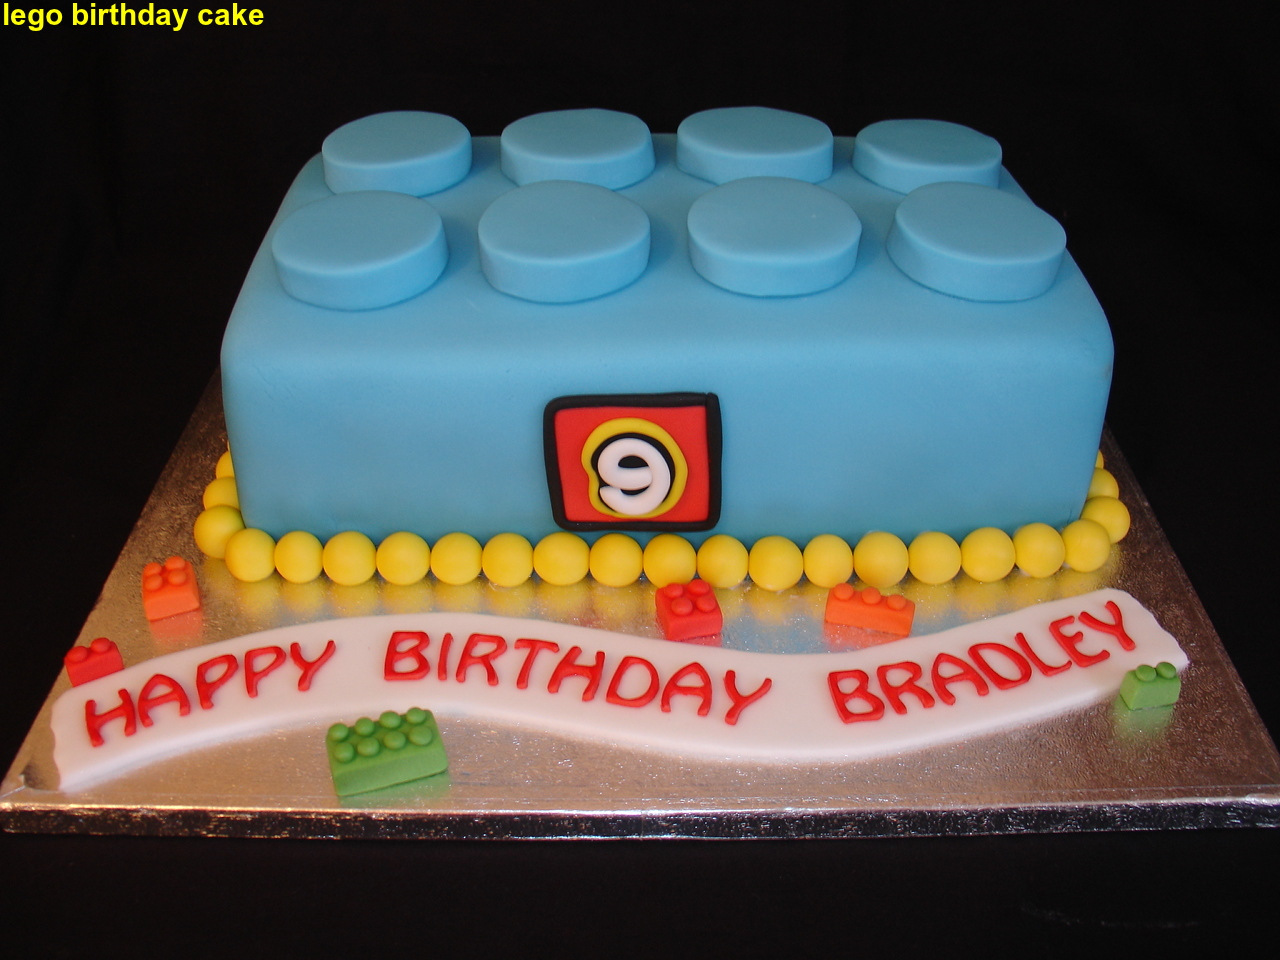 Lego Birthday Cake 2015 The Best Party Cake